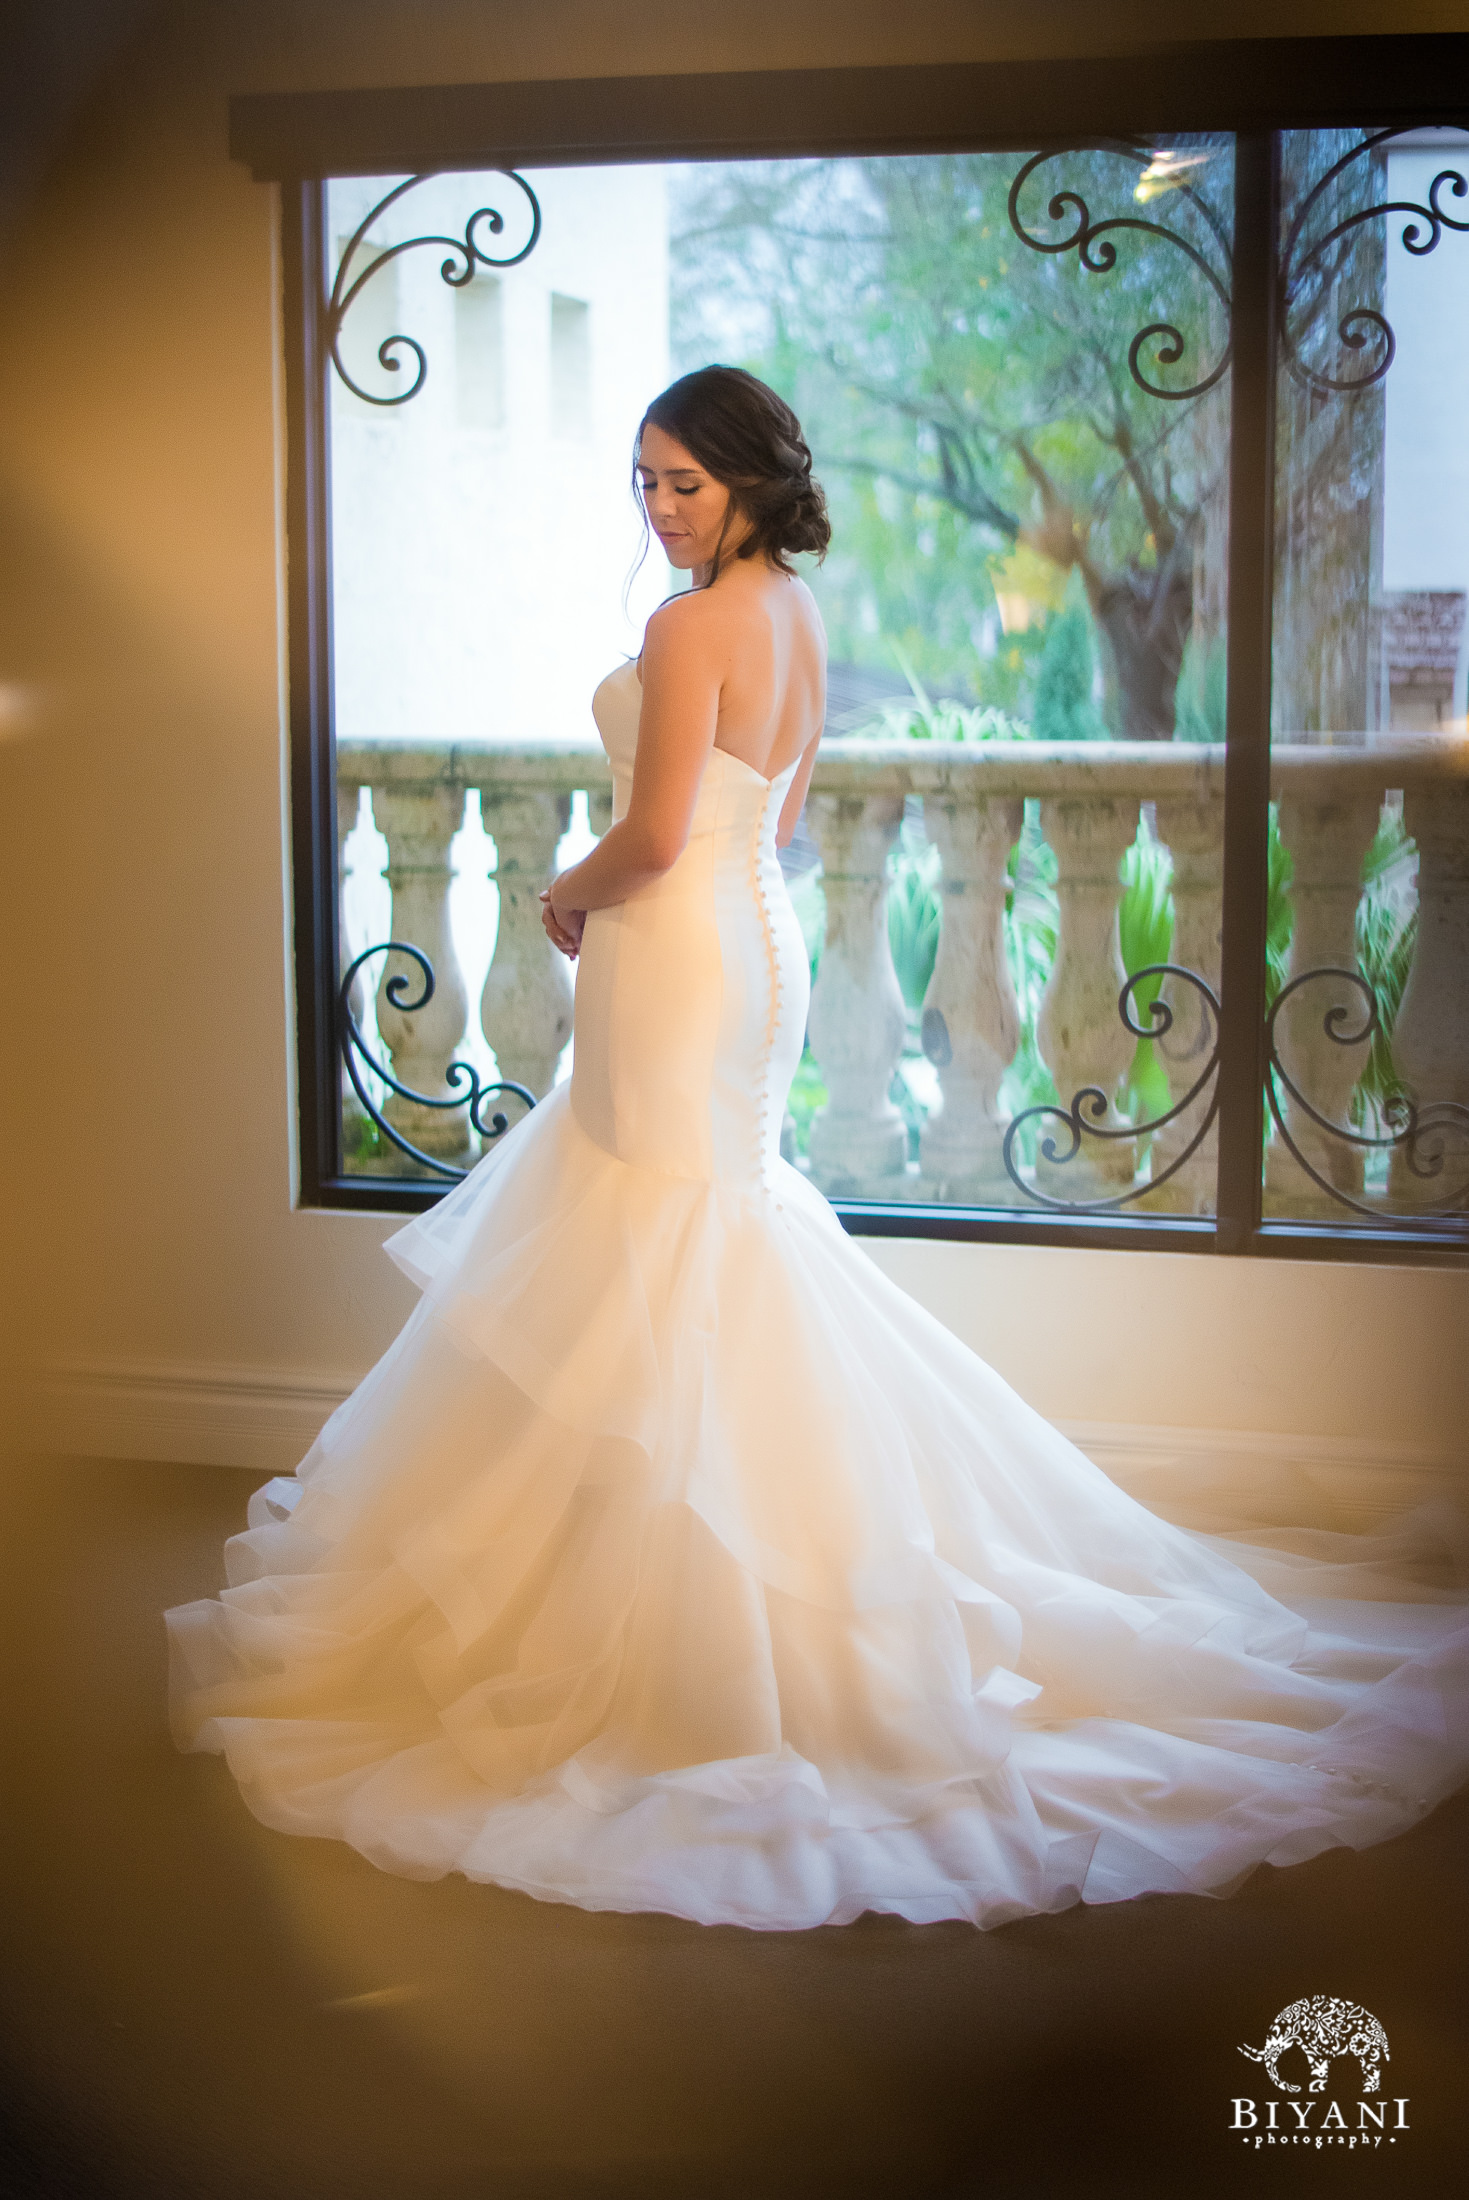 Bride's wedding dress portraits